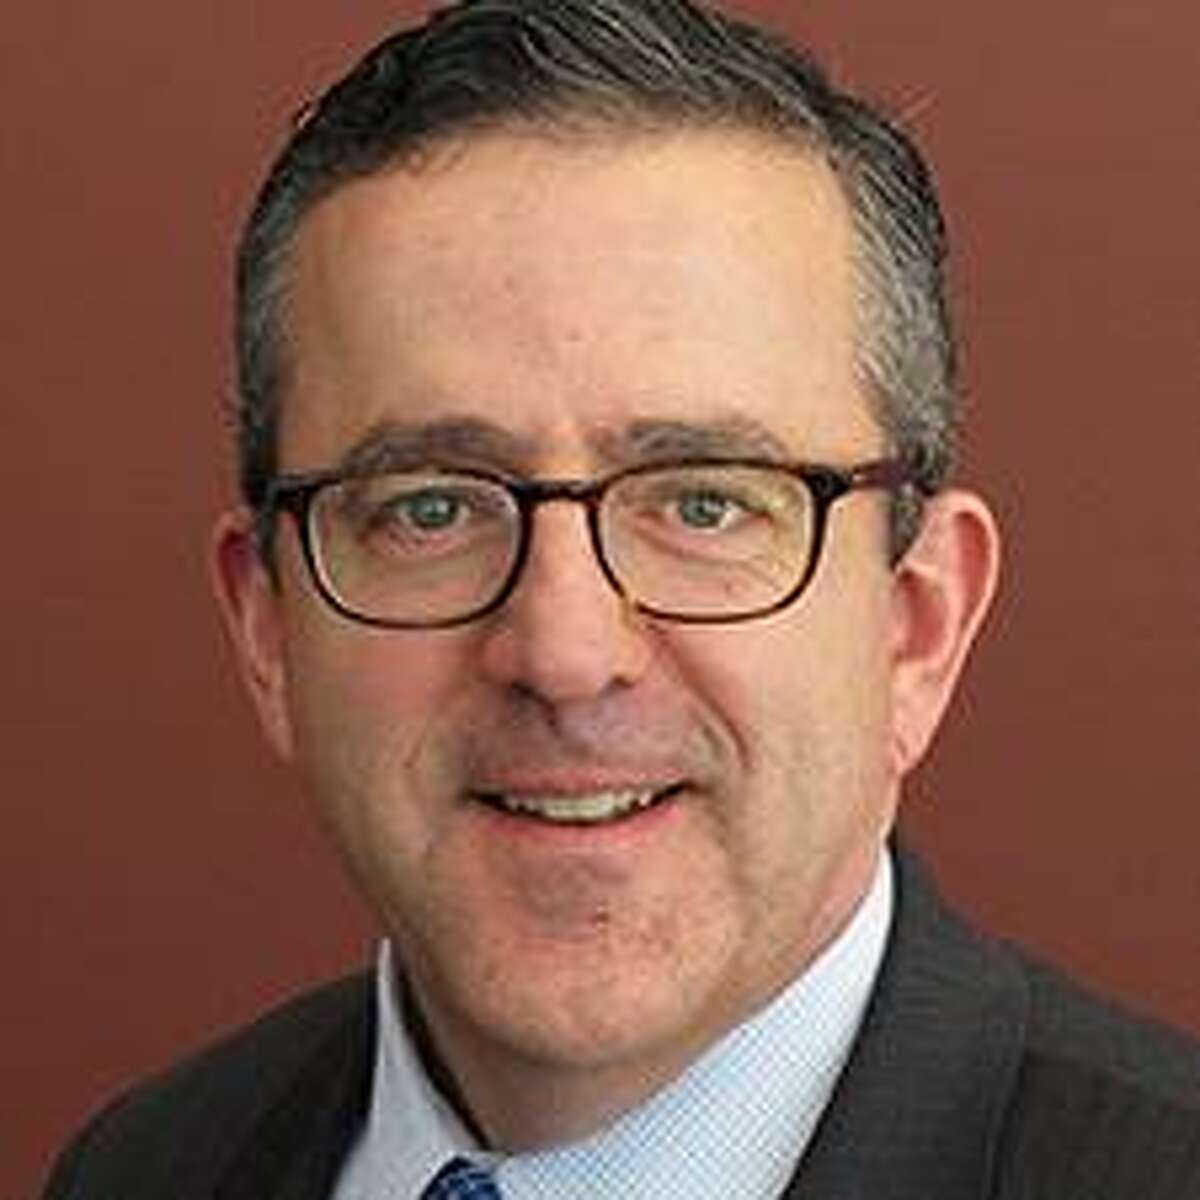 Brian Flaherty, senior vice president of public policy at the Connecticut Business and Industry Association